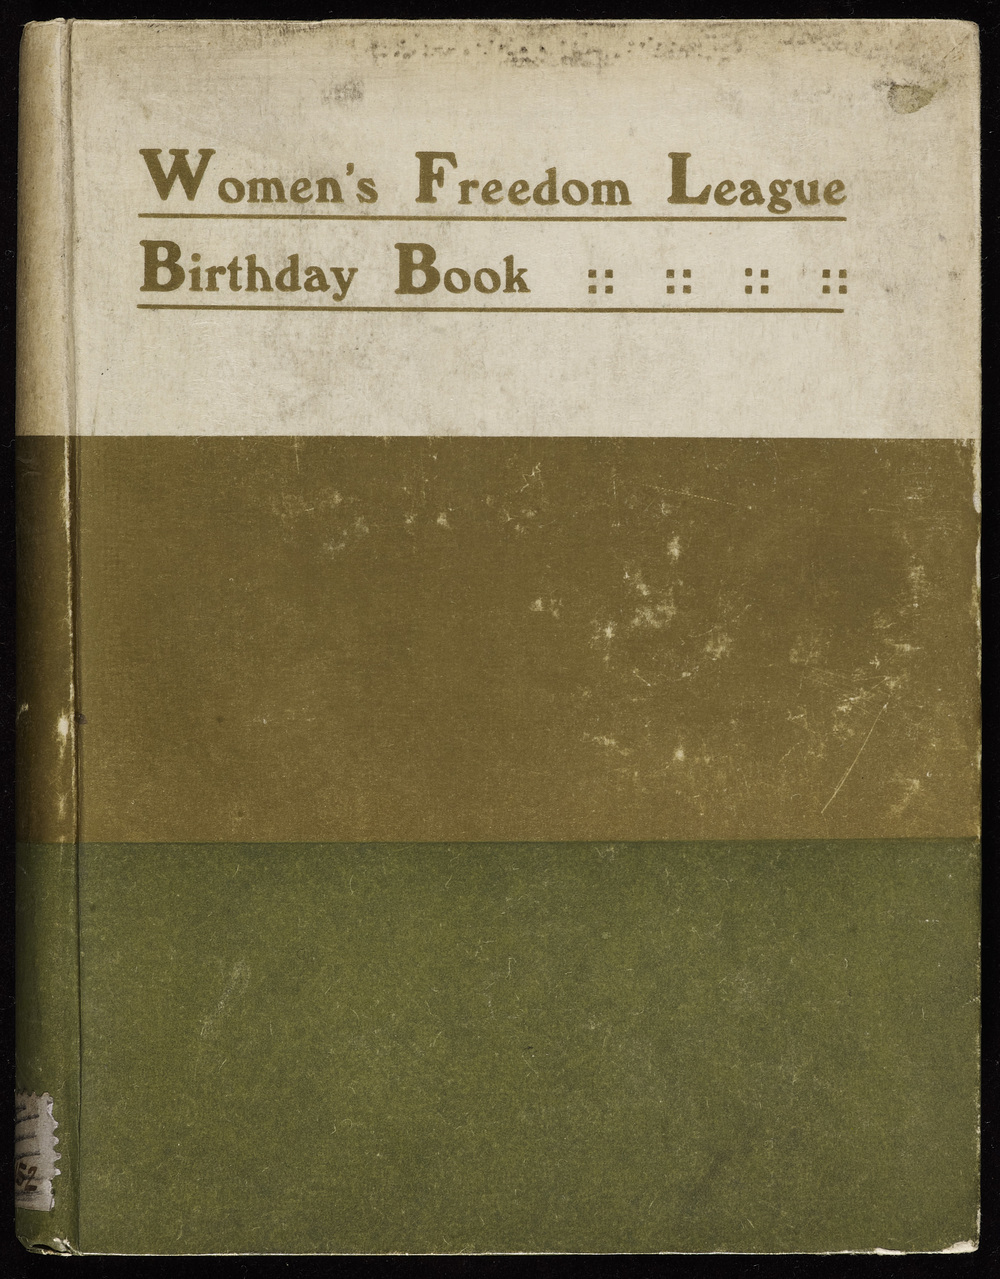 Women's Freedom League Birthday Book